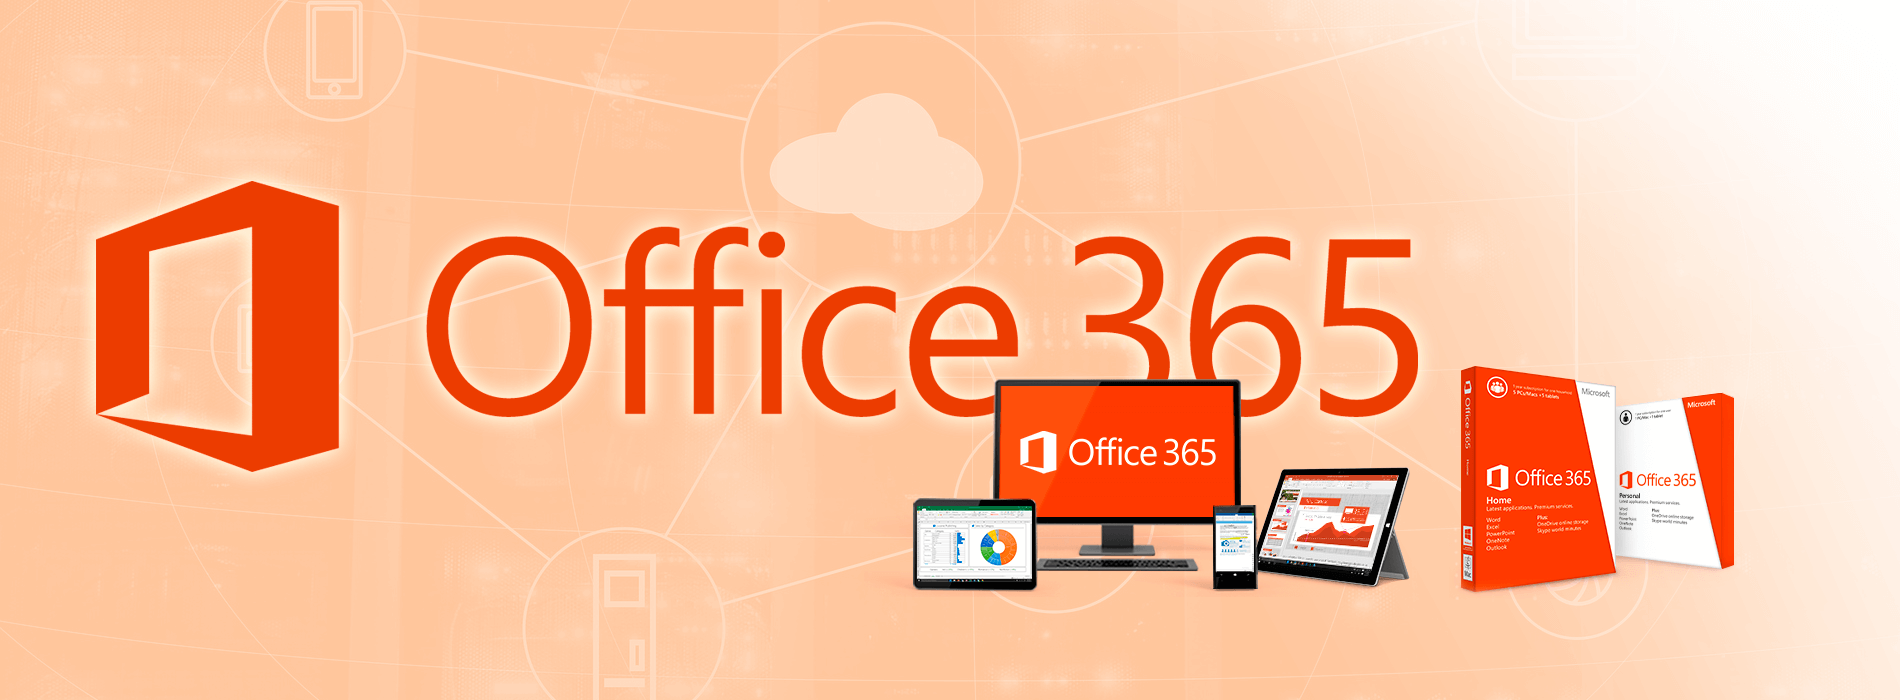 Microsoft Office 365 - Soluciones cloud computing de ofimática - ENETIC